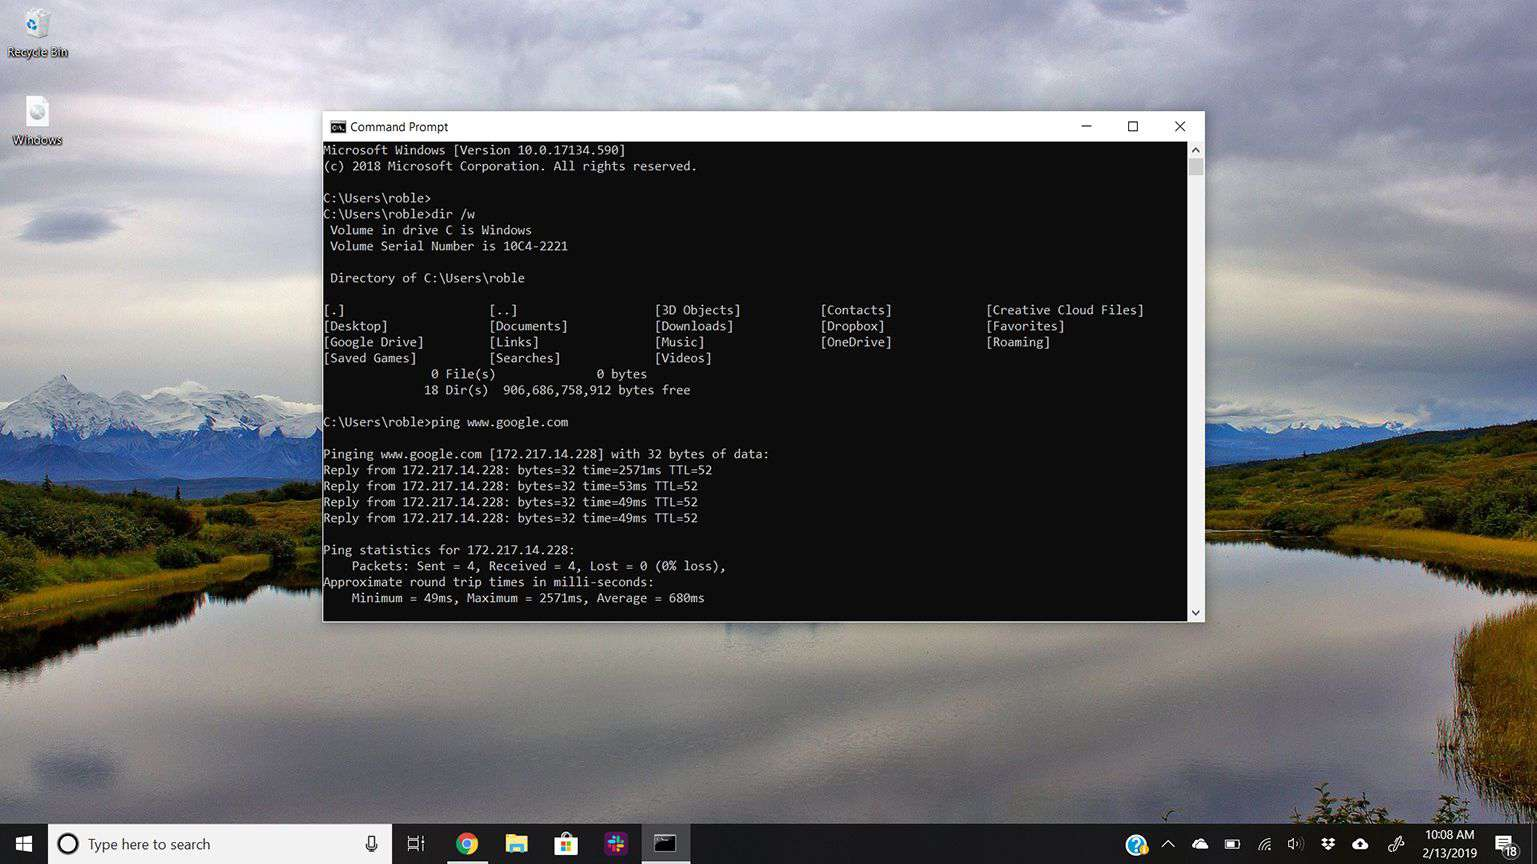 How to Open Command Prompt (Windows 10, 8, 7, Vista, XP).